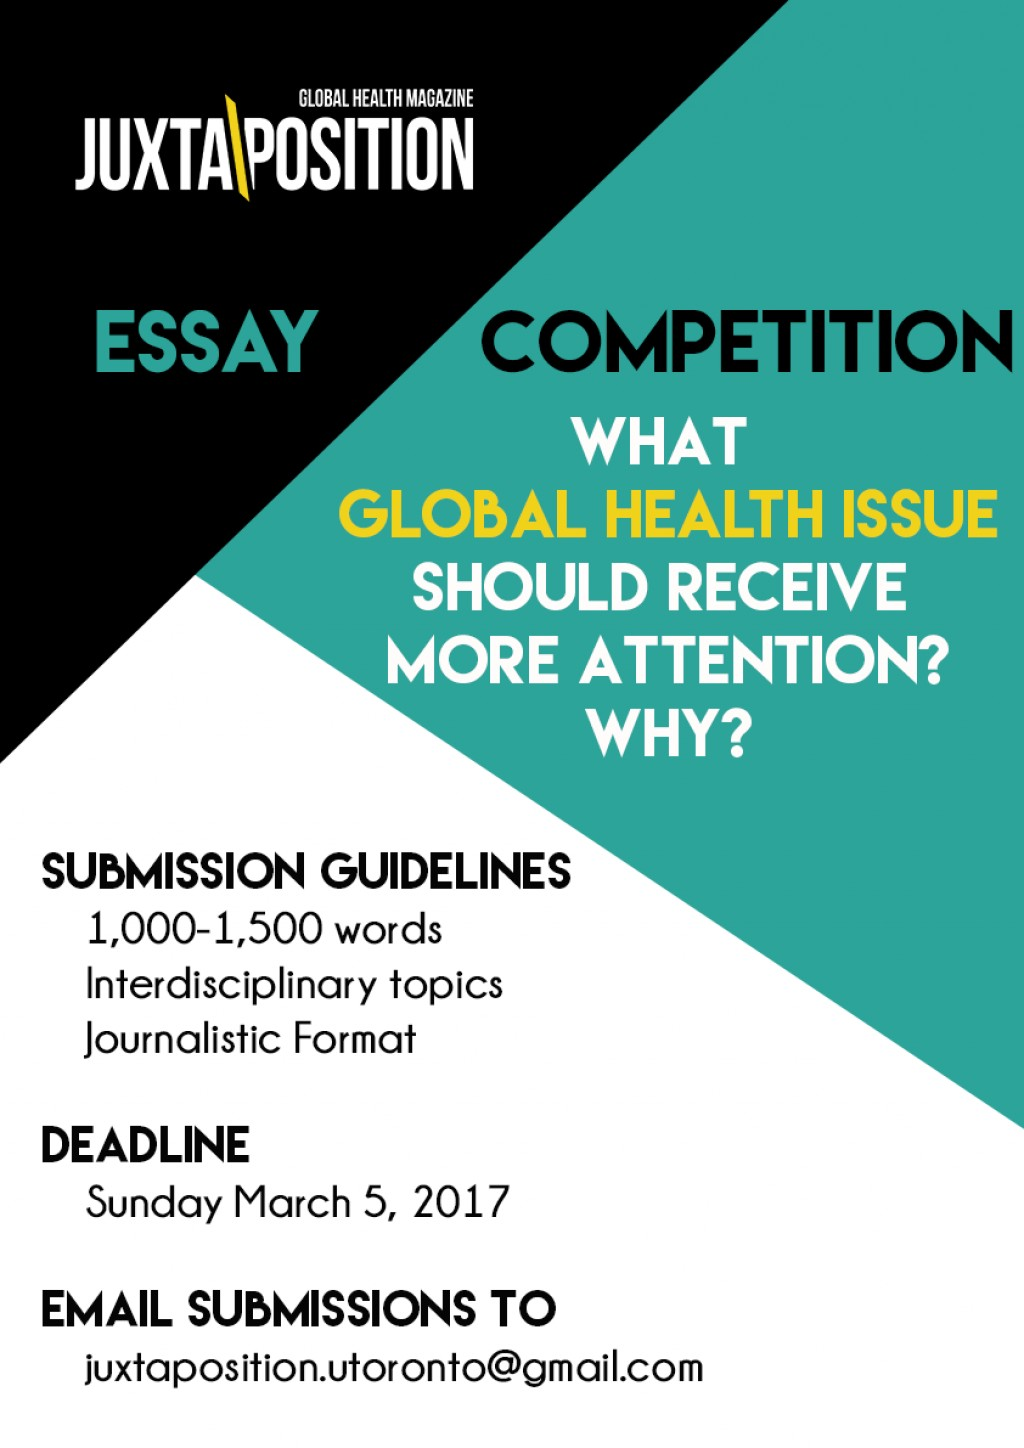 003 Essay Contest Essaycompposterw940 Staggering 2017 Online Competition India Writing High School Optimist International Large